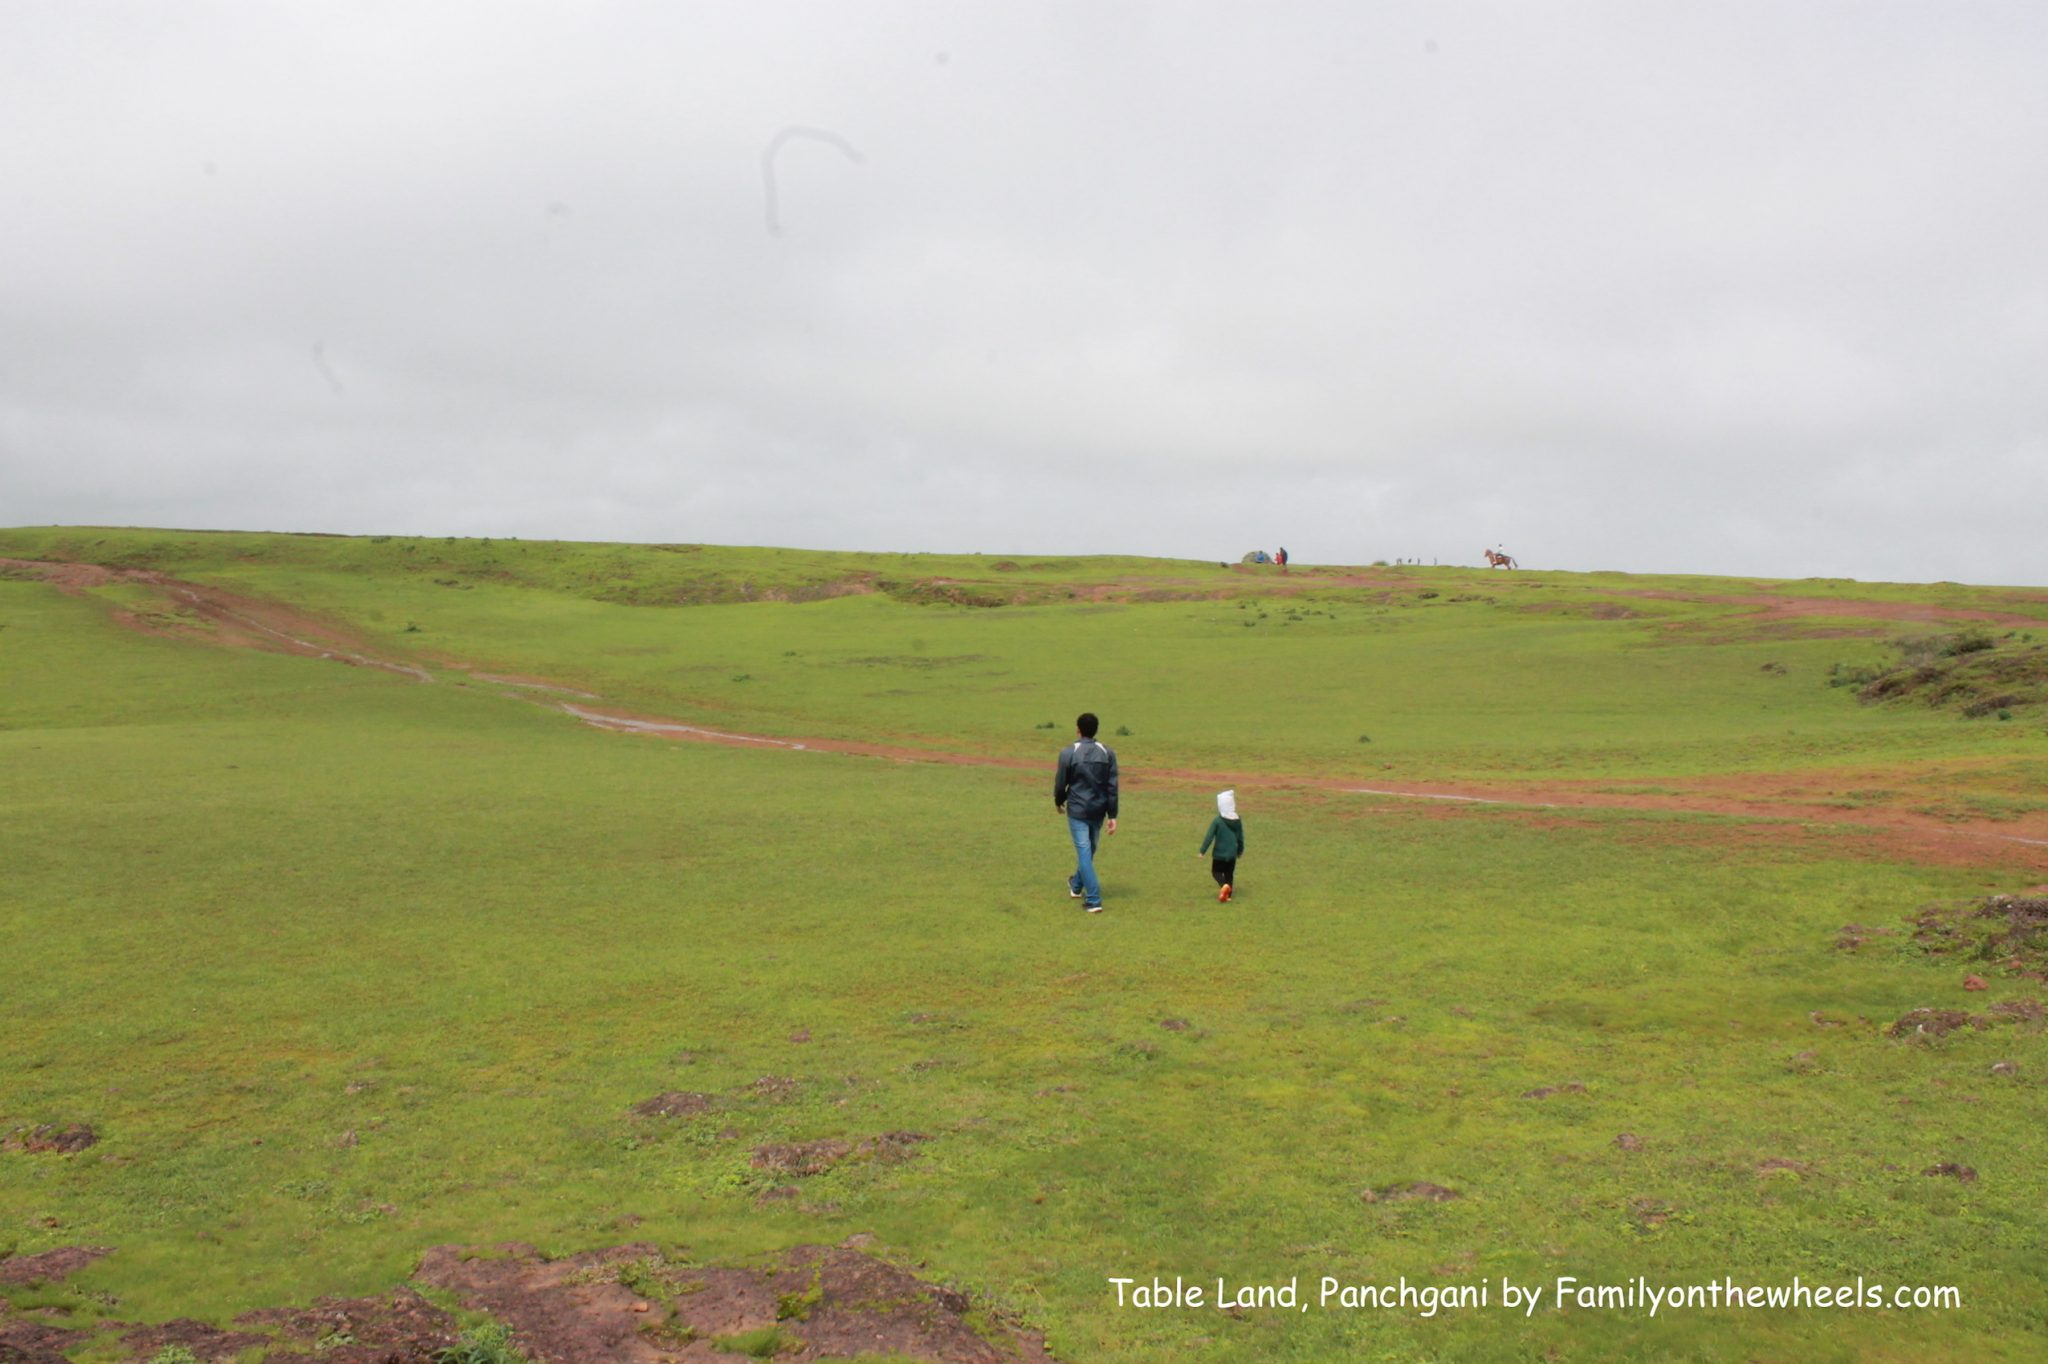 Table land, panchgani, travel with Kid